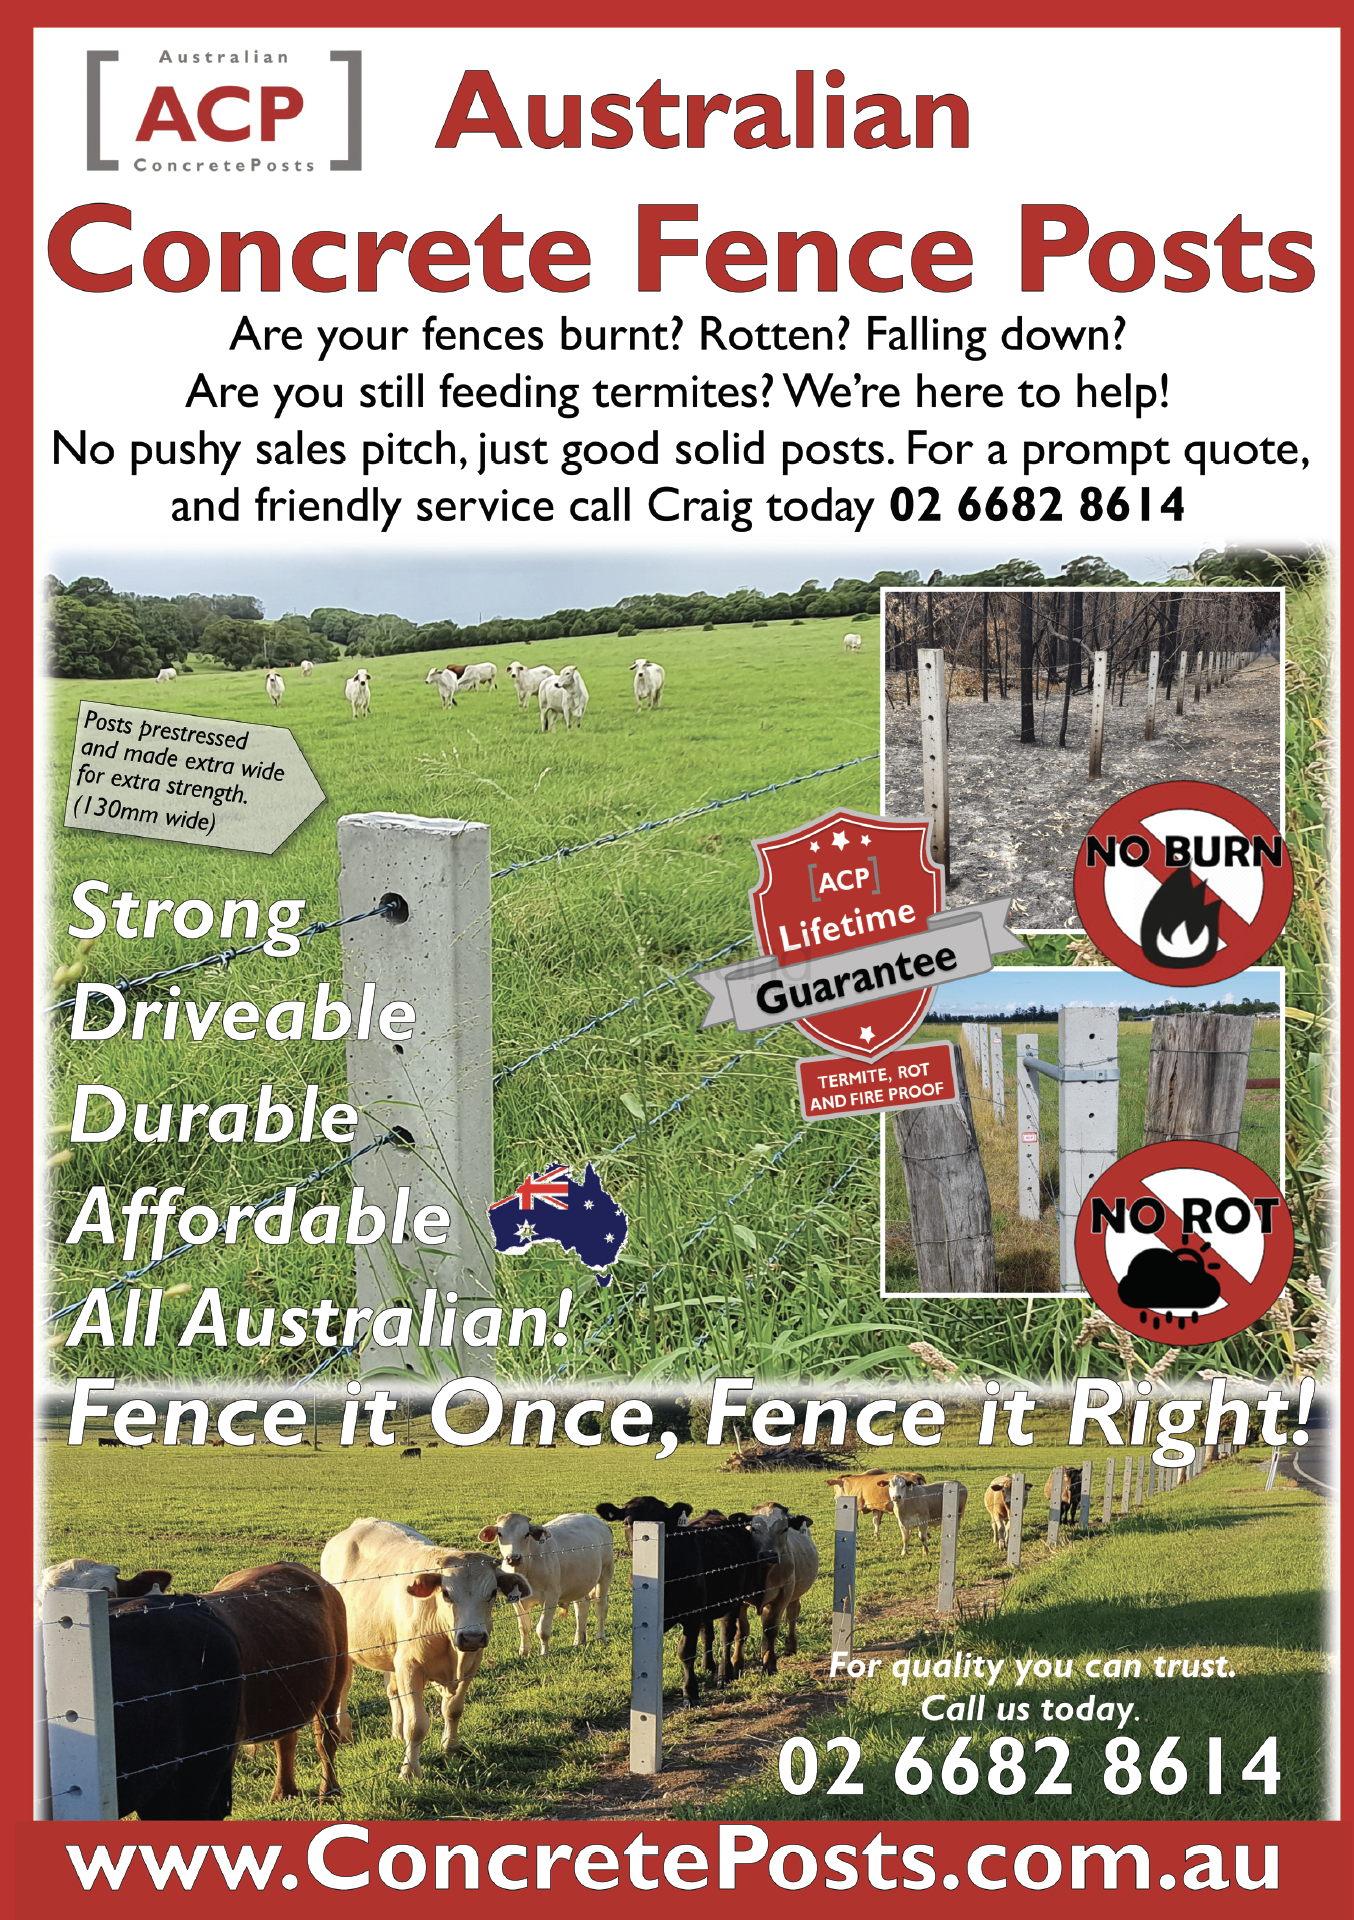 Concrete Fence Posts, Parkview Casino, Kevin Hogan MP, Janelle Saffin, Lismore, Chris Gulaptis, NSW National Party, Betta Electrical, Lismore Toyota, Heartland Magazine Lismore, News, Advertising New South Wales, Magazine Advertisement